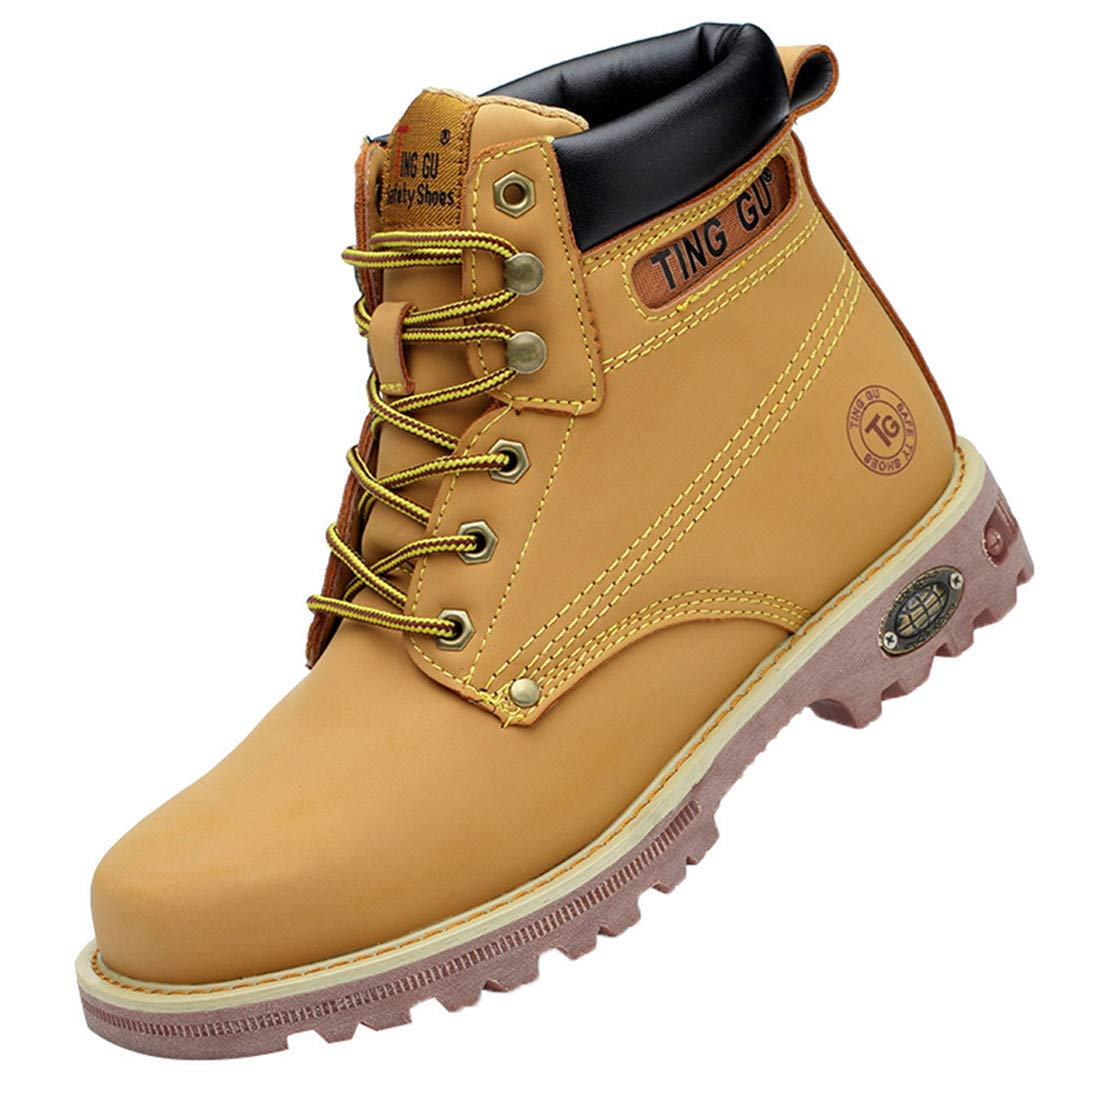 Men Women Couple High-Top Anti-Smash Short Boots High Tube Safety Shoes Non-Slip Wear Resistant Martin Boots (Yellow, 9-US) by heavKin-Boots